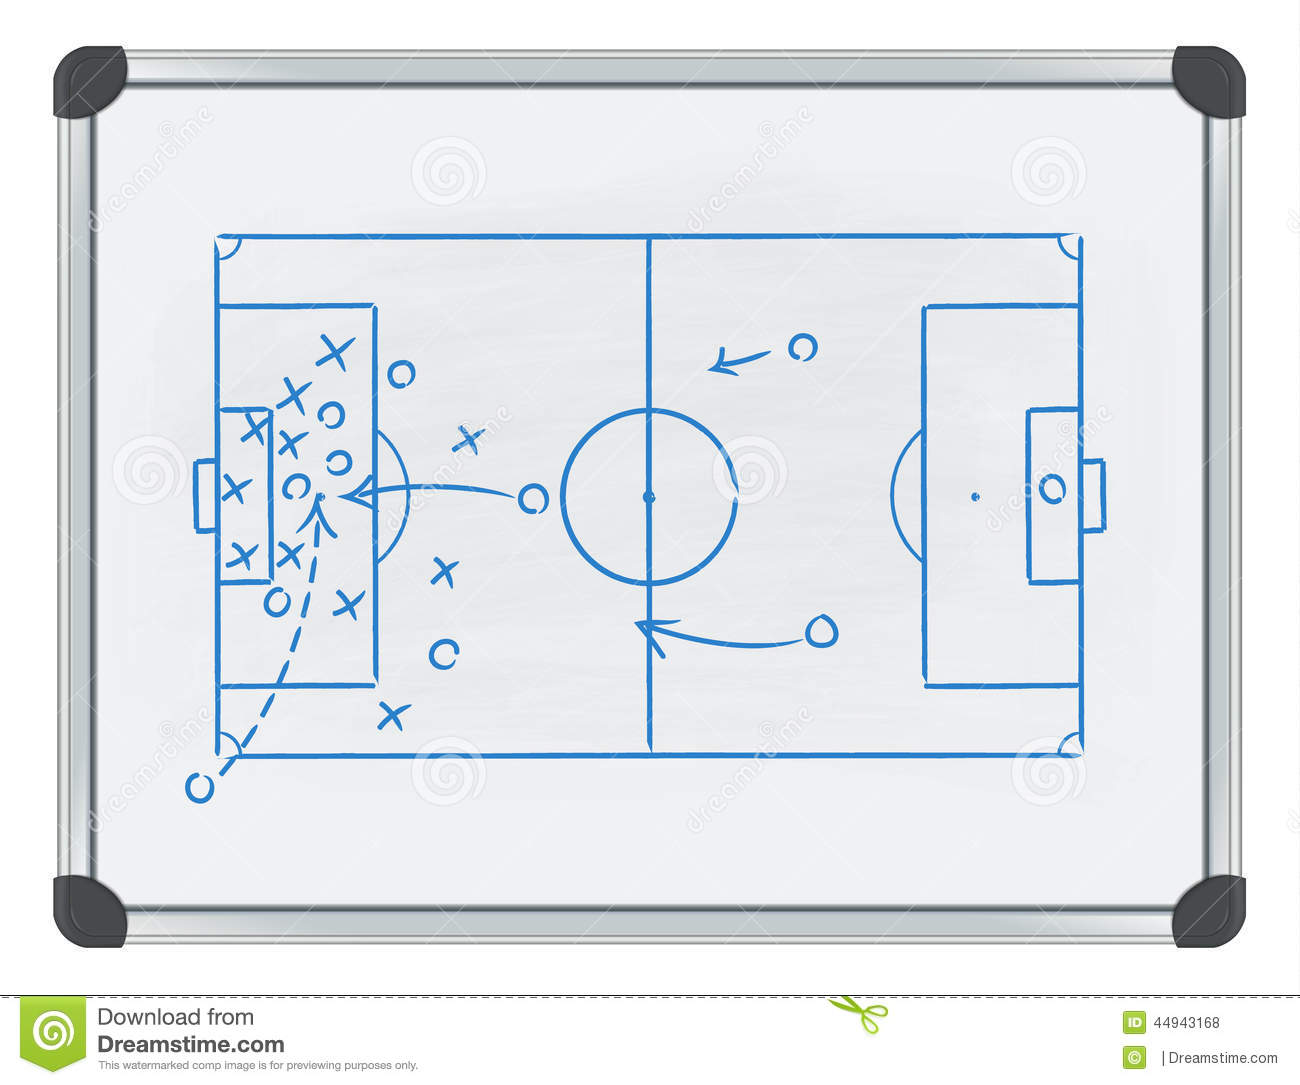 example of a tactic in sport